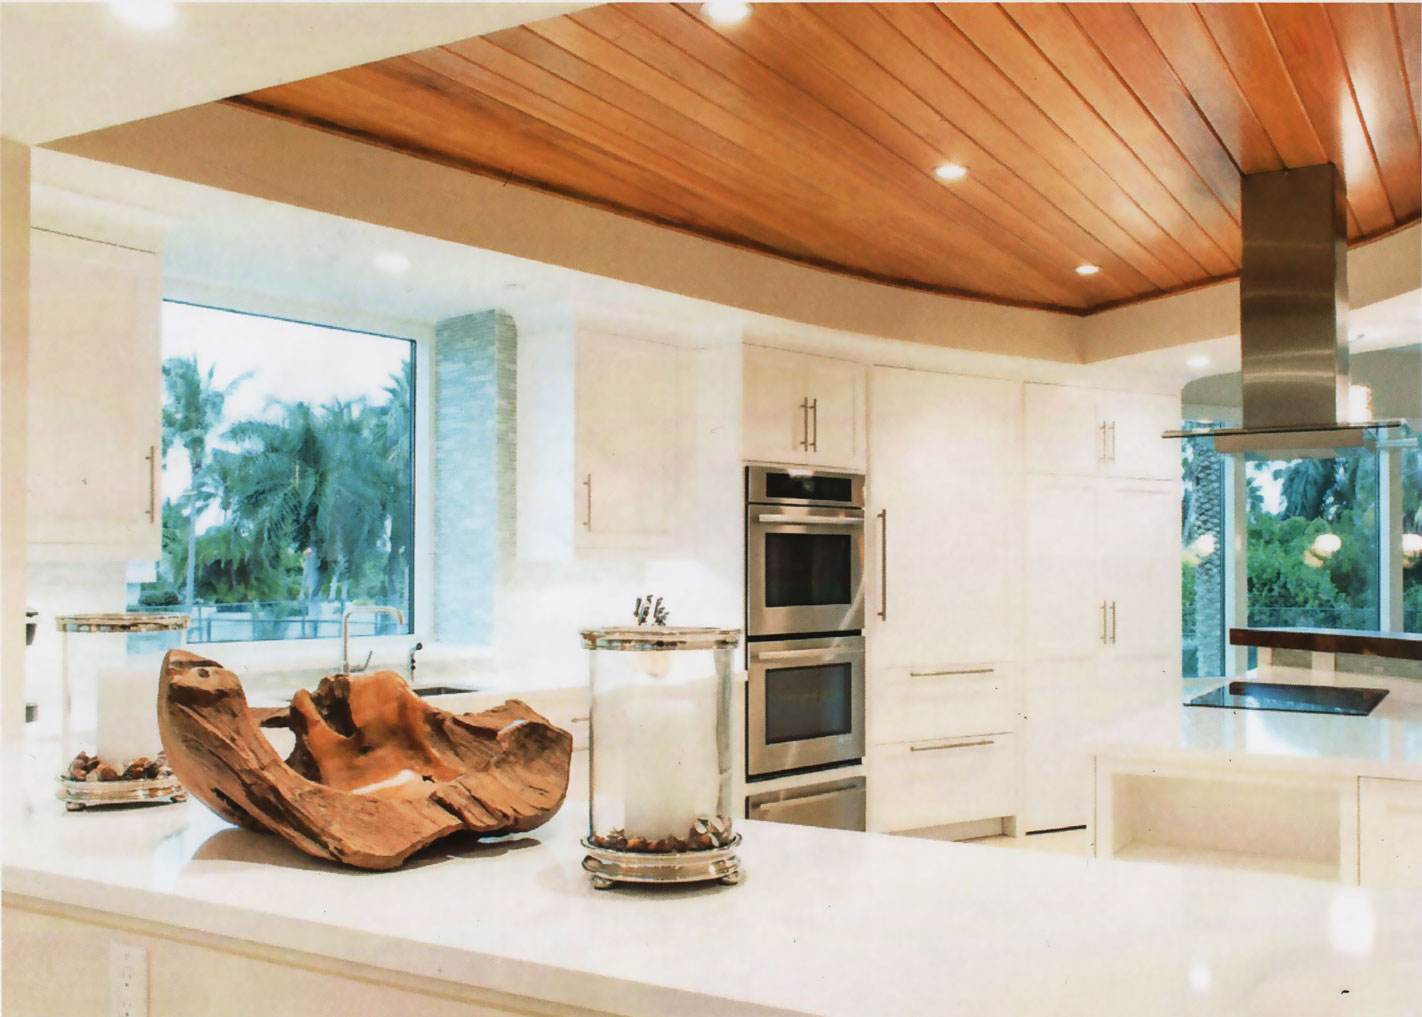 Custom made wood ceiling tray in coastal inspired all white kitchen with marble countertops